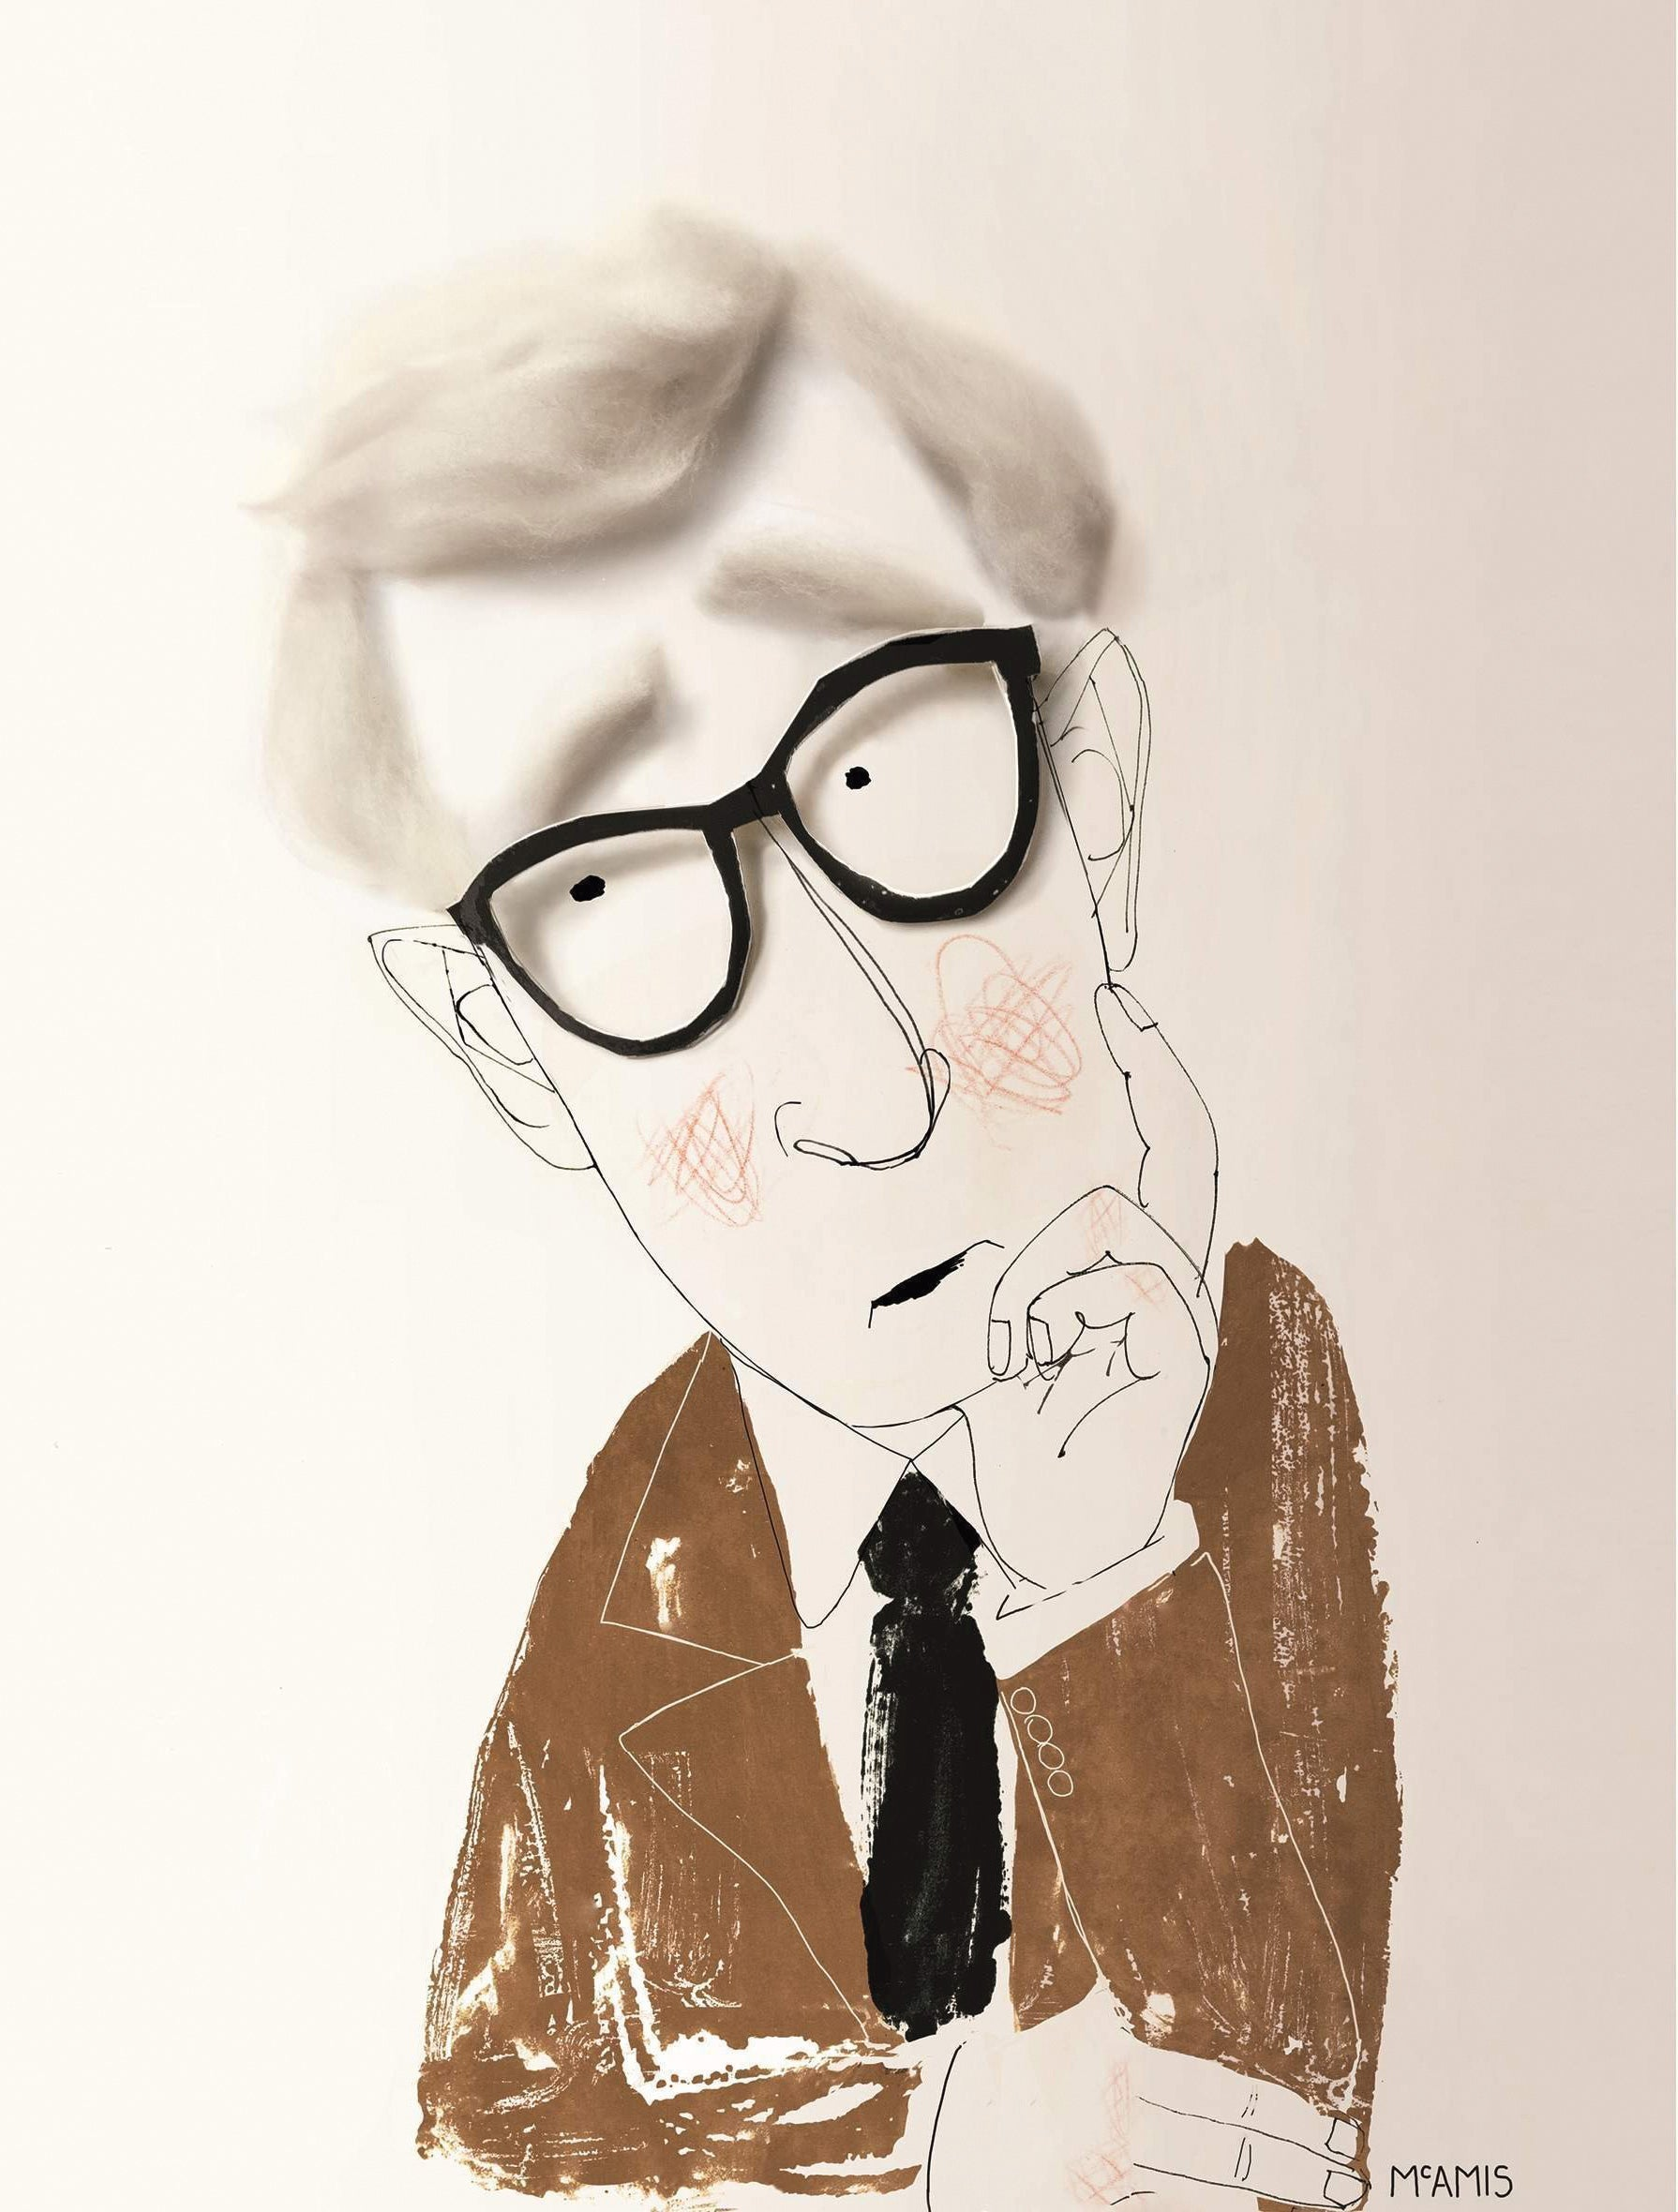 Woody Allen's memoir is as witty as it is problematic